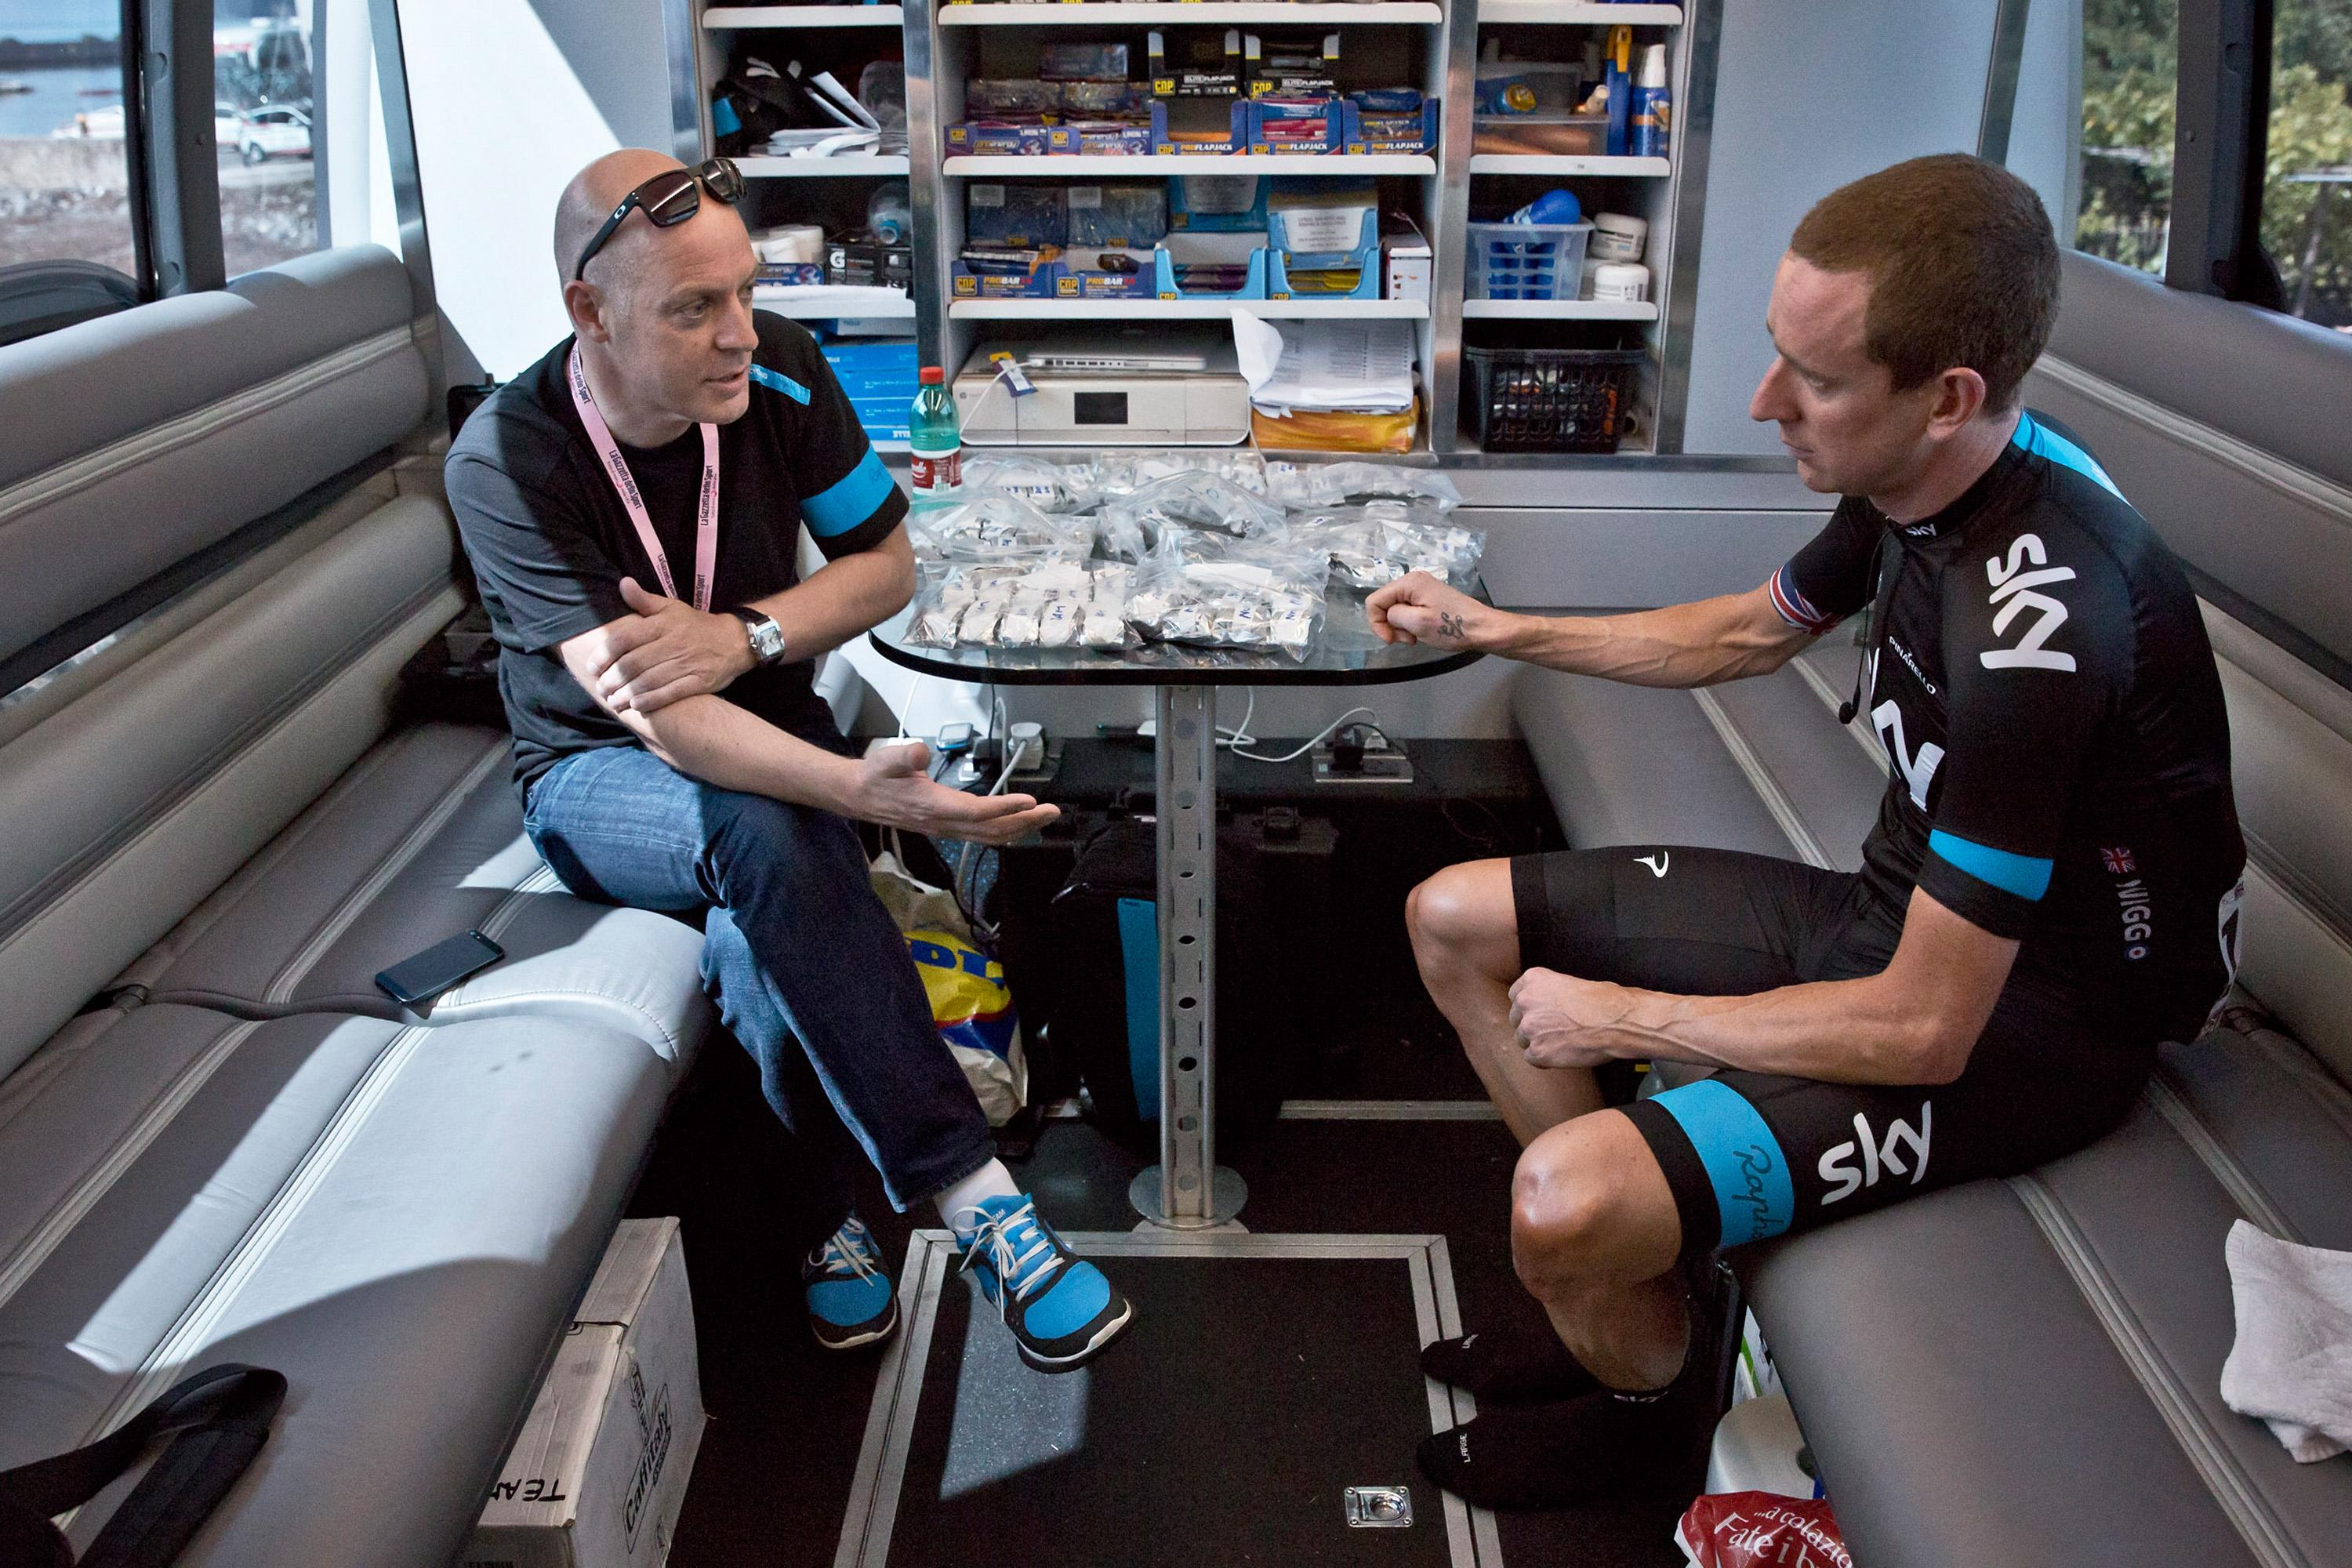 Sir Dave Brailsford should quit Team Sky and British cycling after the controversy